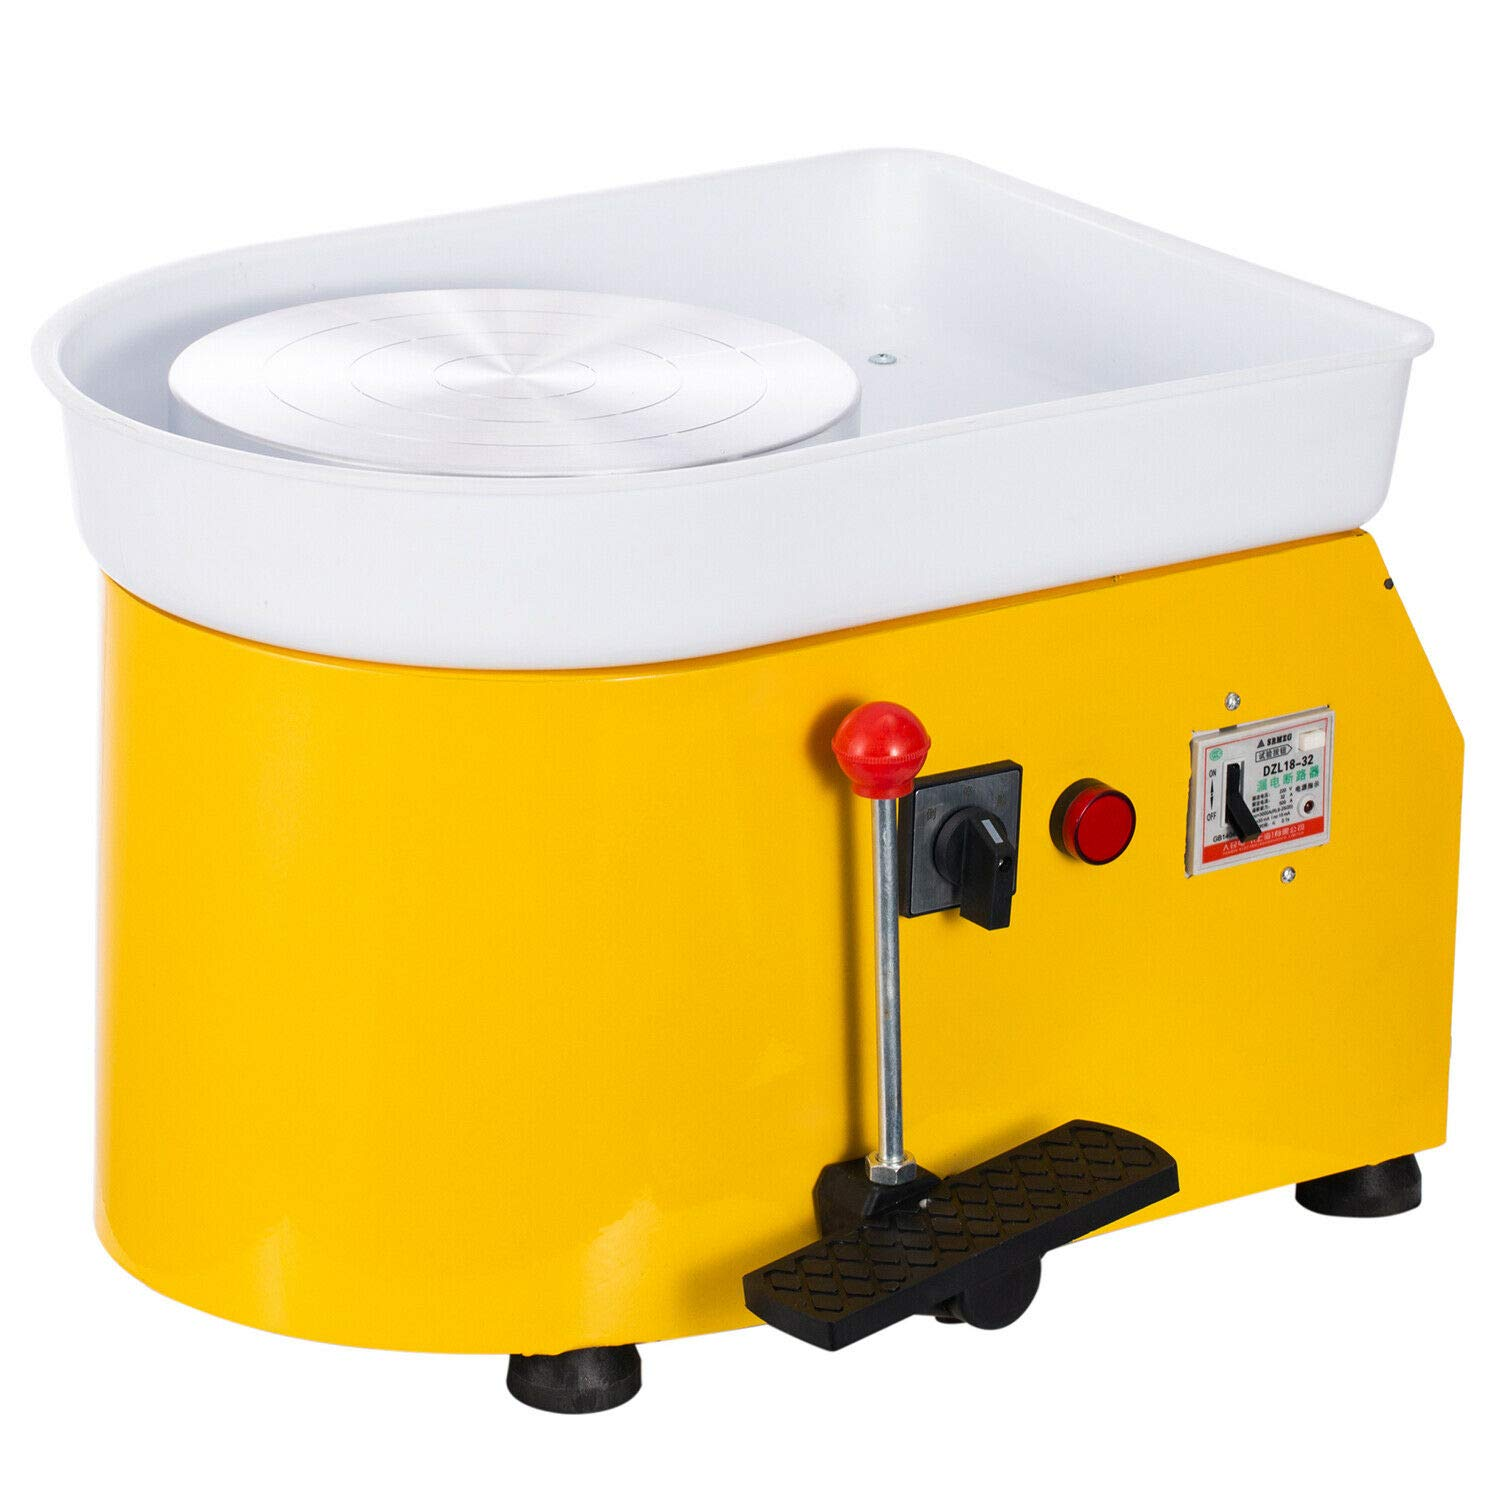 SOFEDY 110V 250V Electric Pottery Wheel Machine Ceramic Craft Making Machine for Kid School Teaching Home